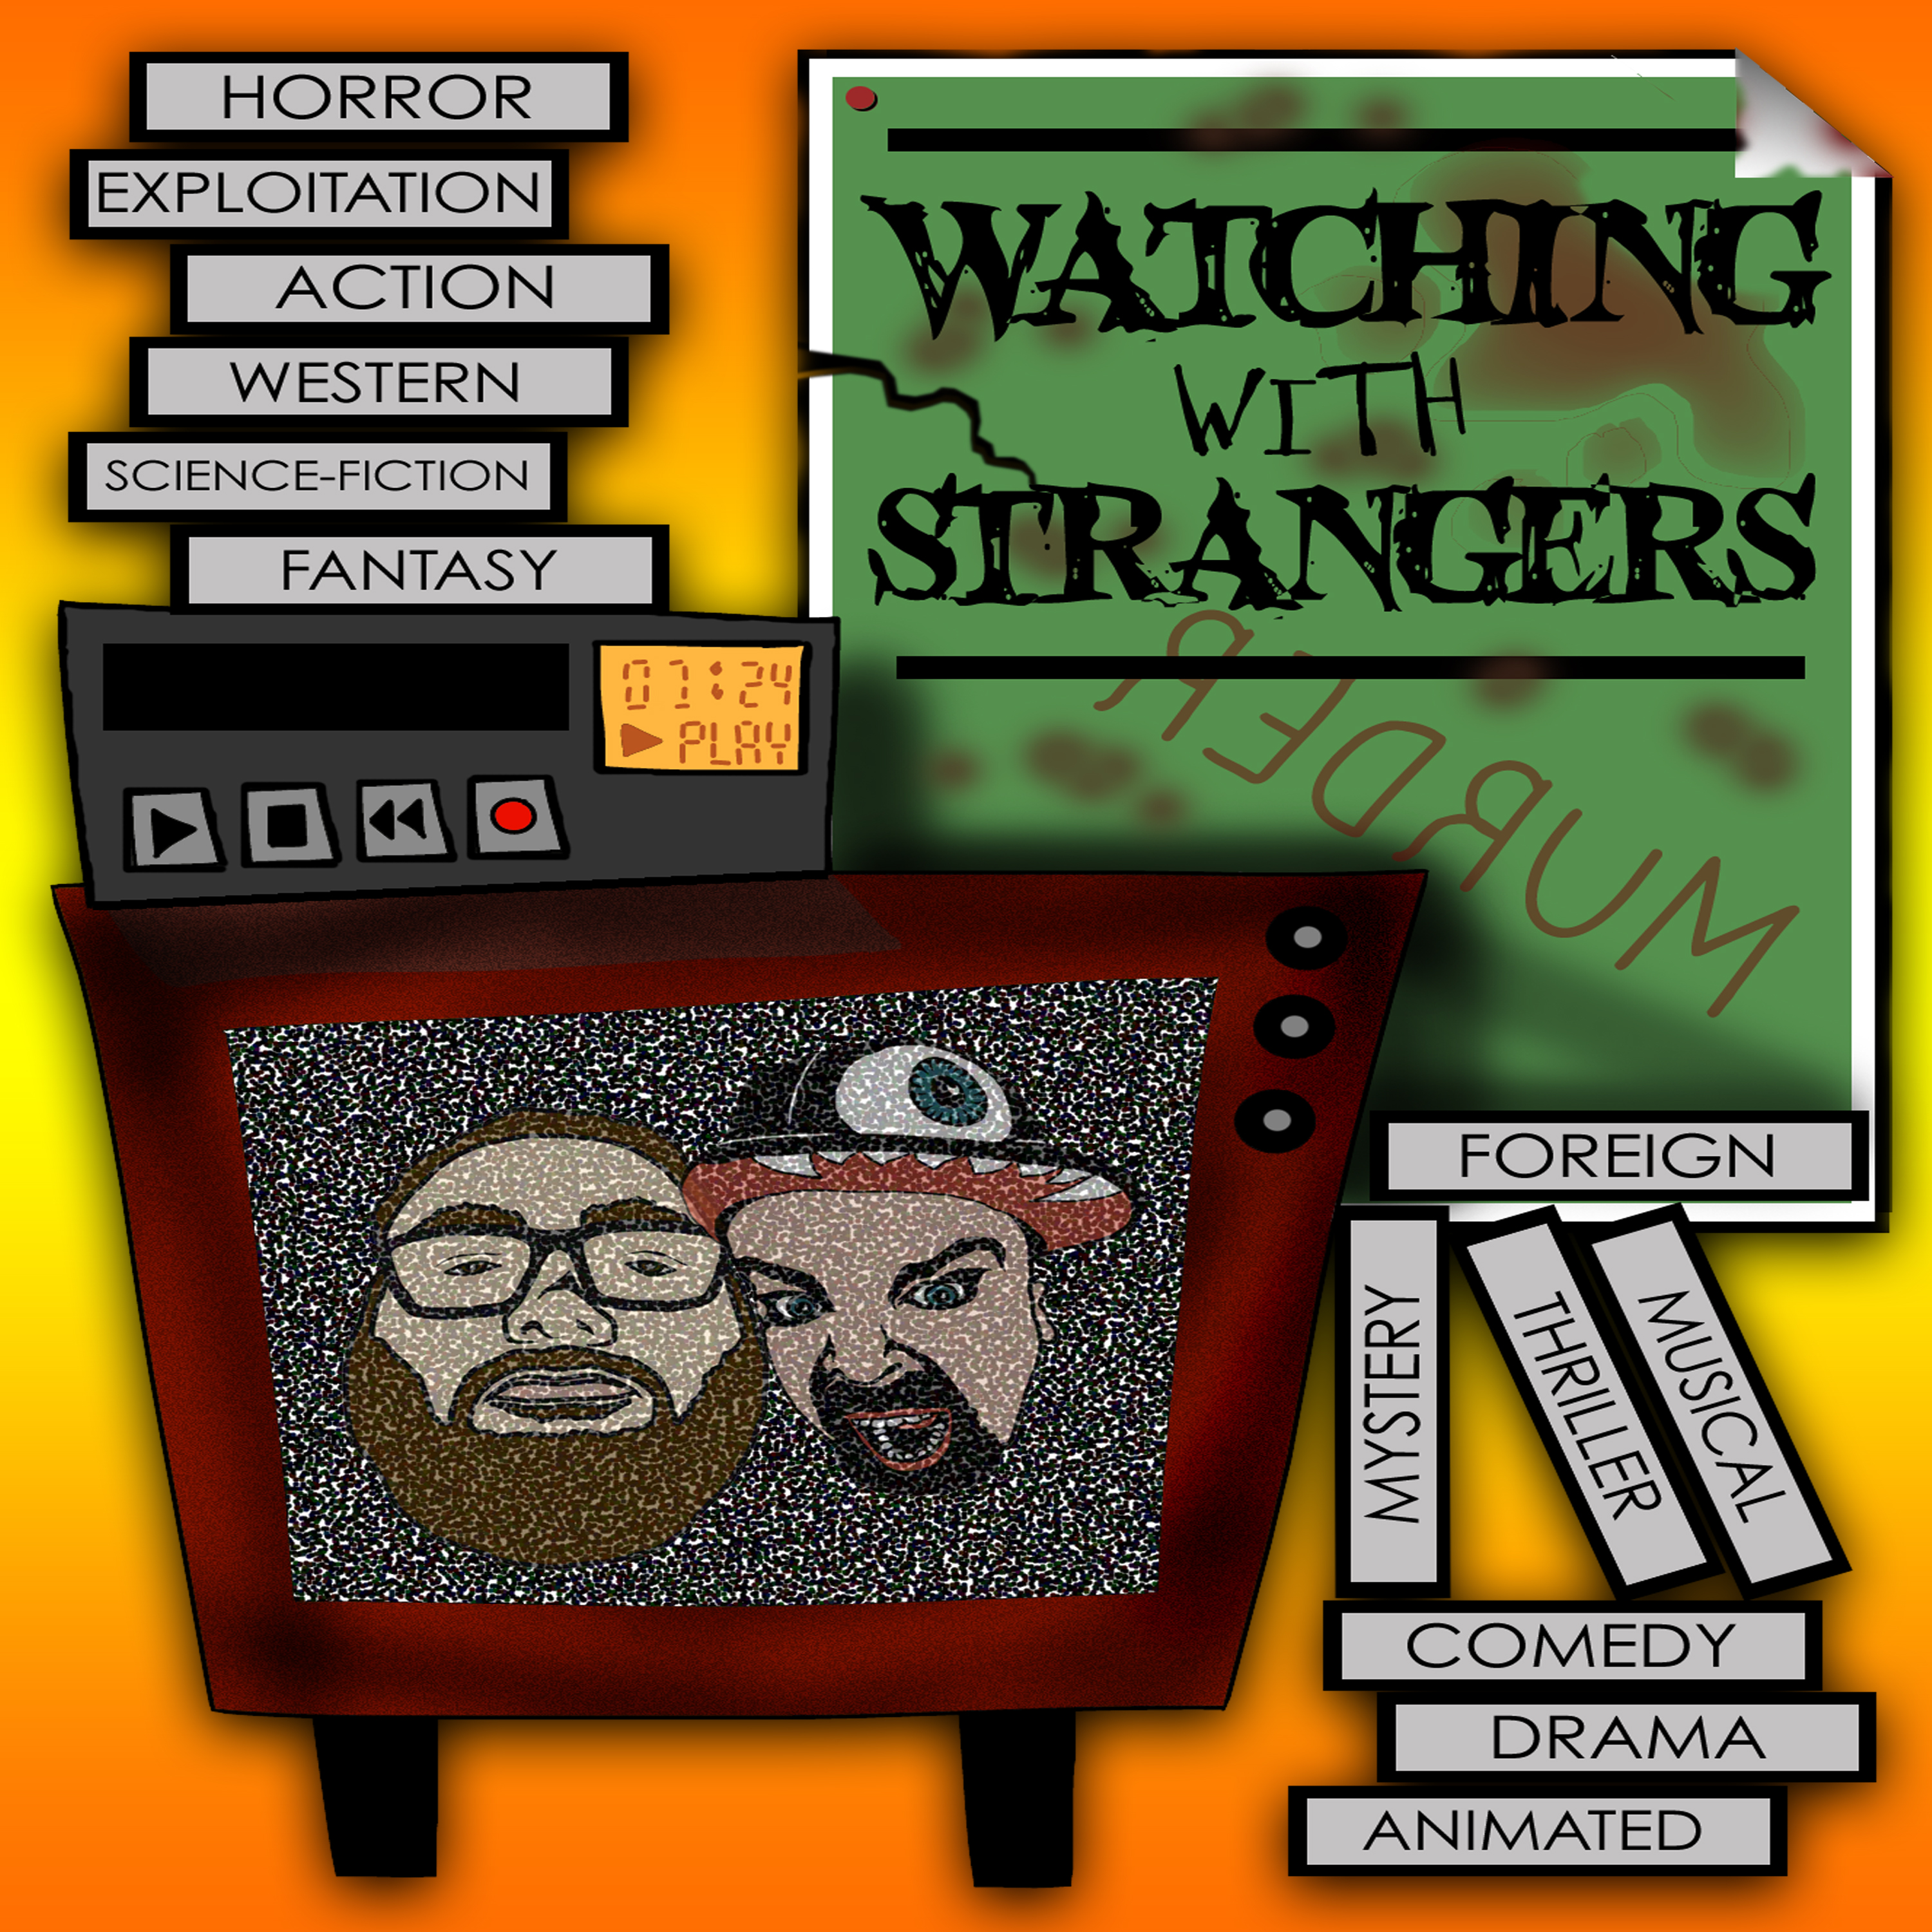 Watching With Strangers